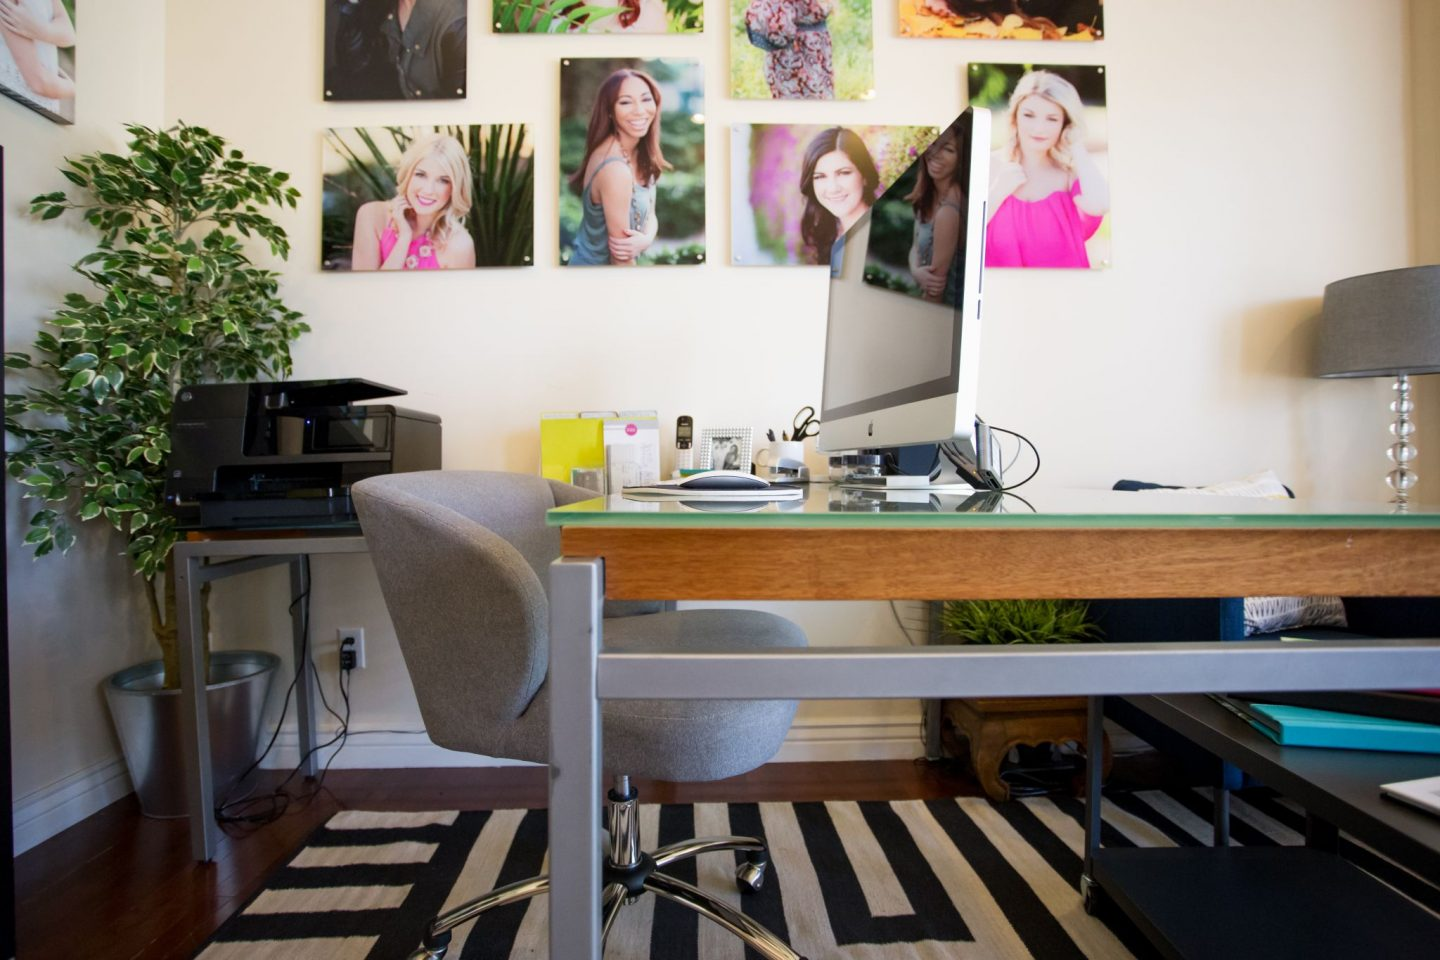 Home Office, Home Remodel, Home Decor